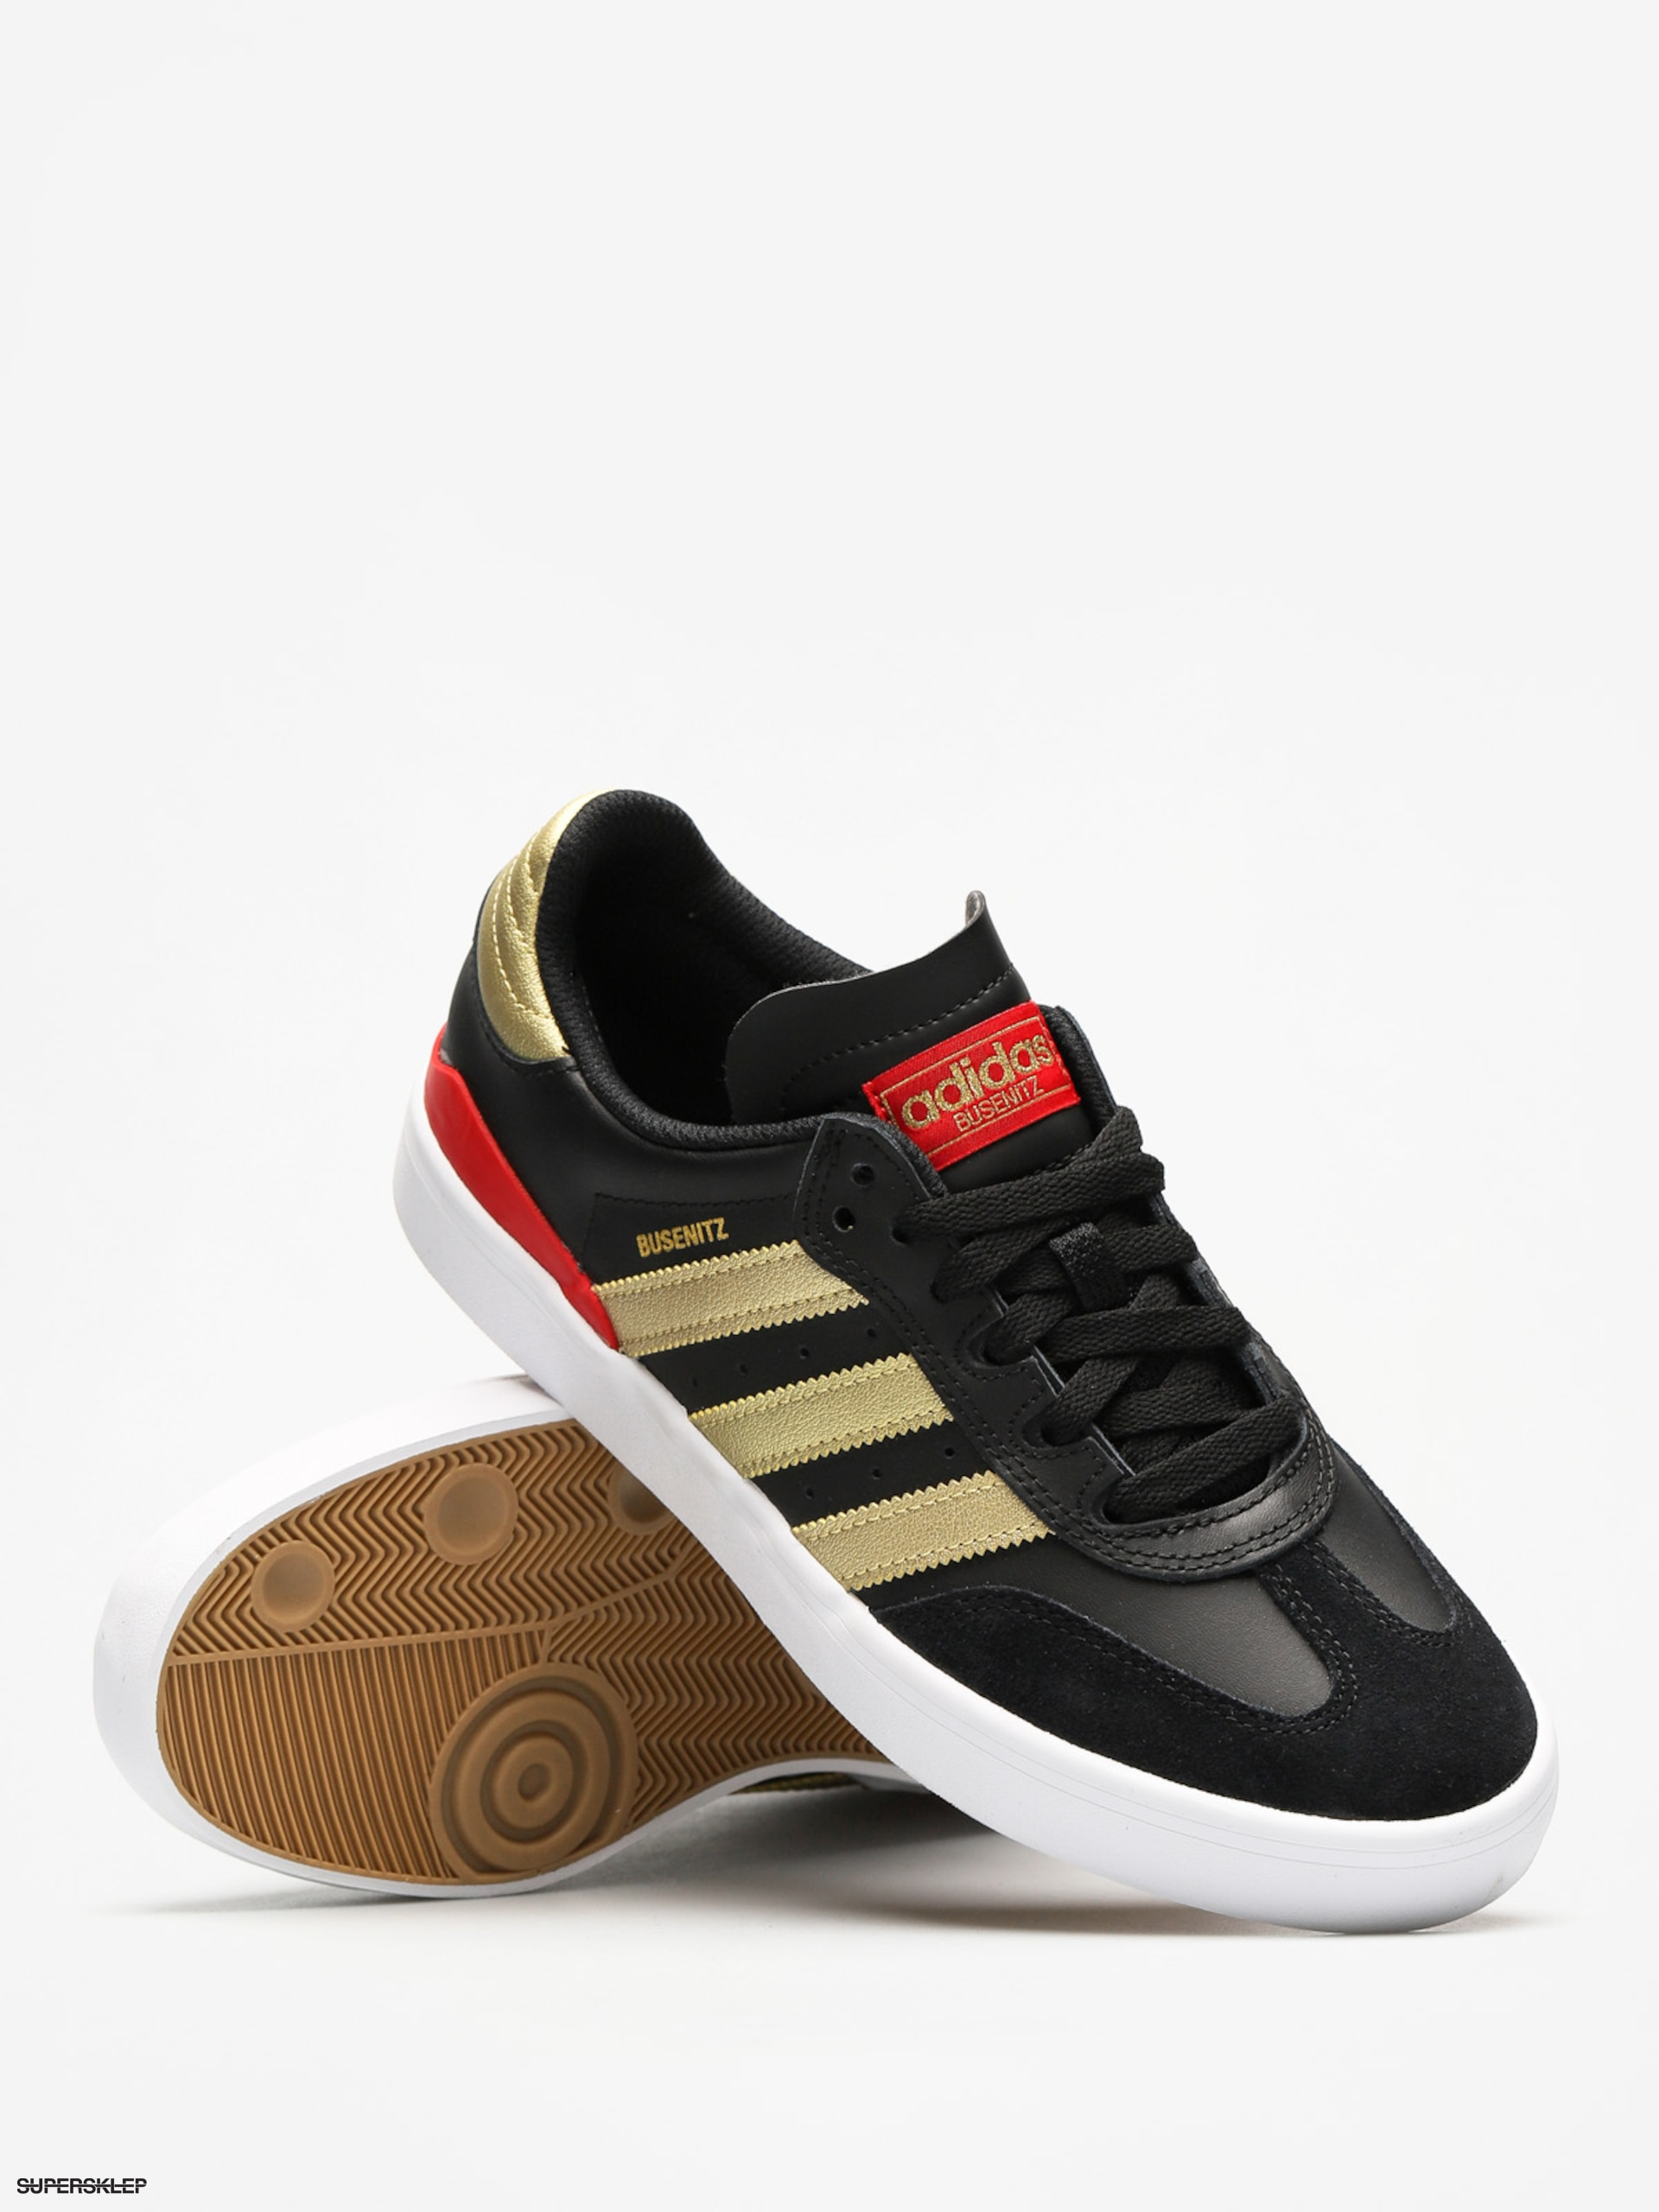 aec815570f369 Topánky Adidas Busenitz Vulc Rx (core black/gold met./scarlet)